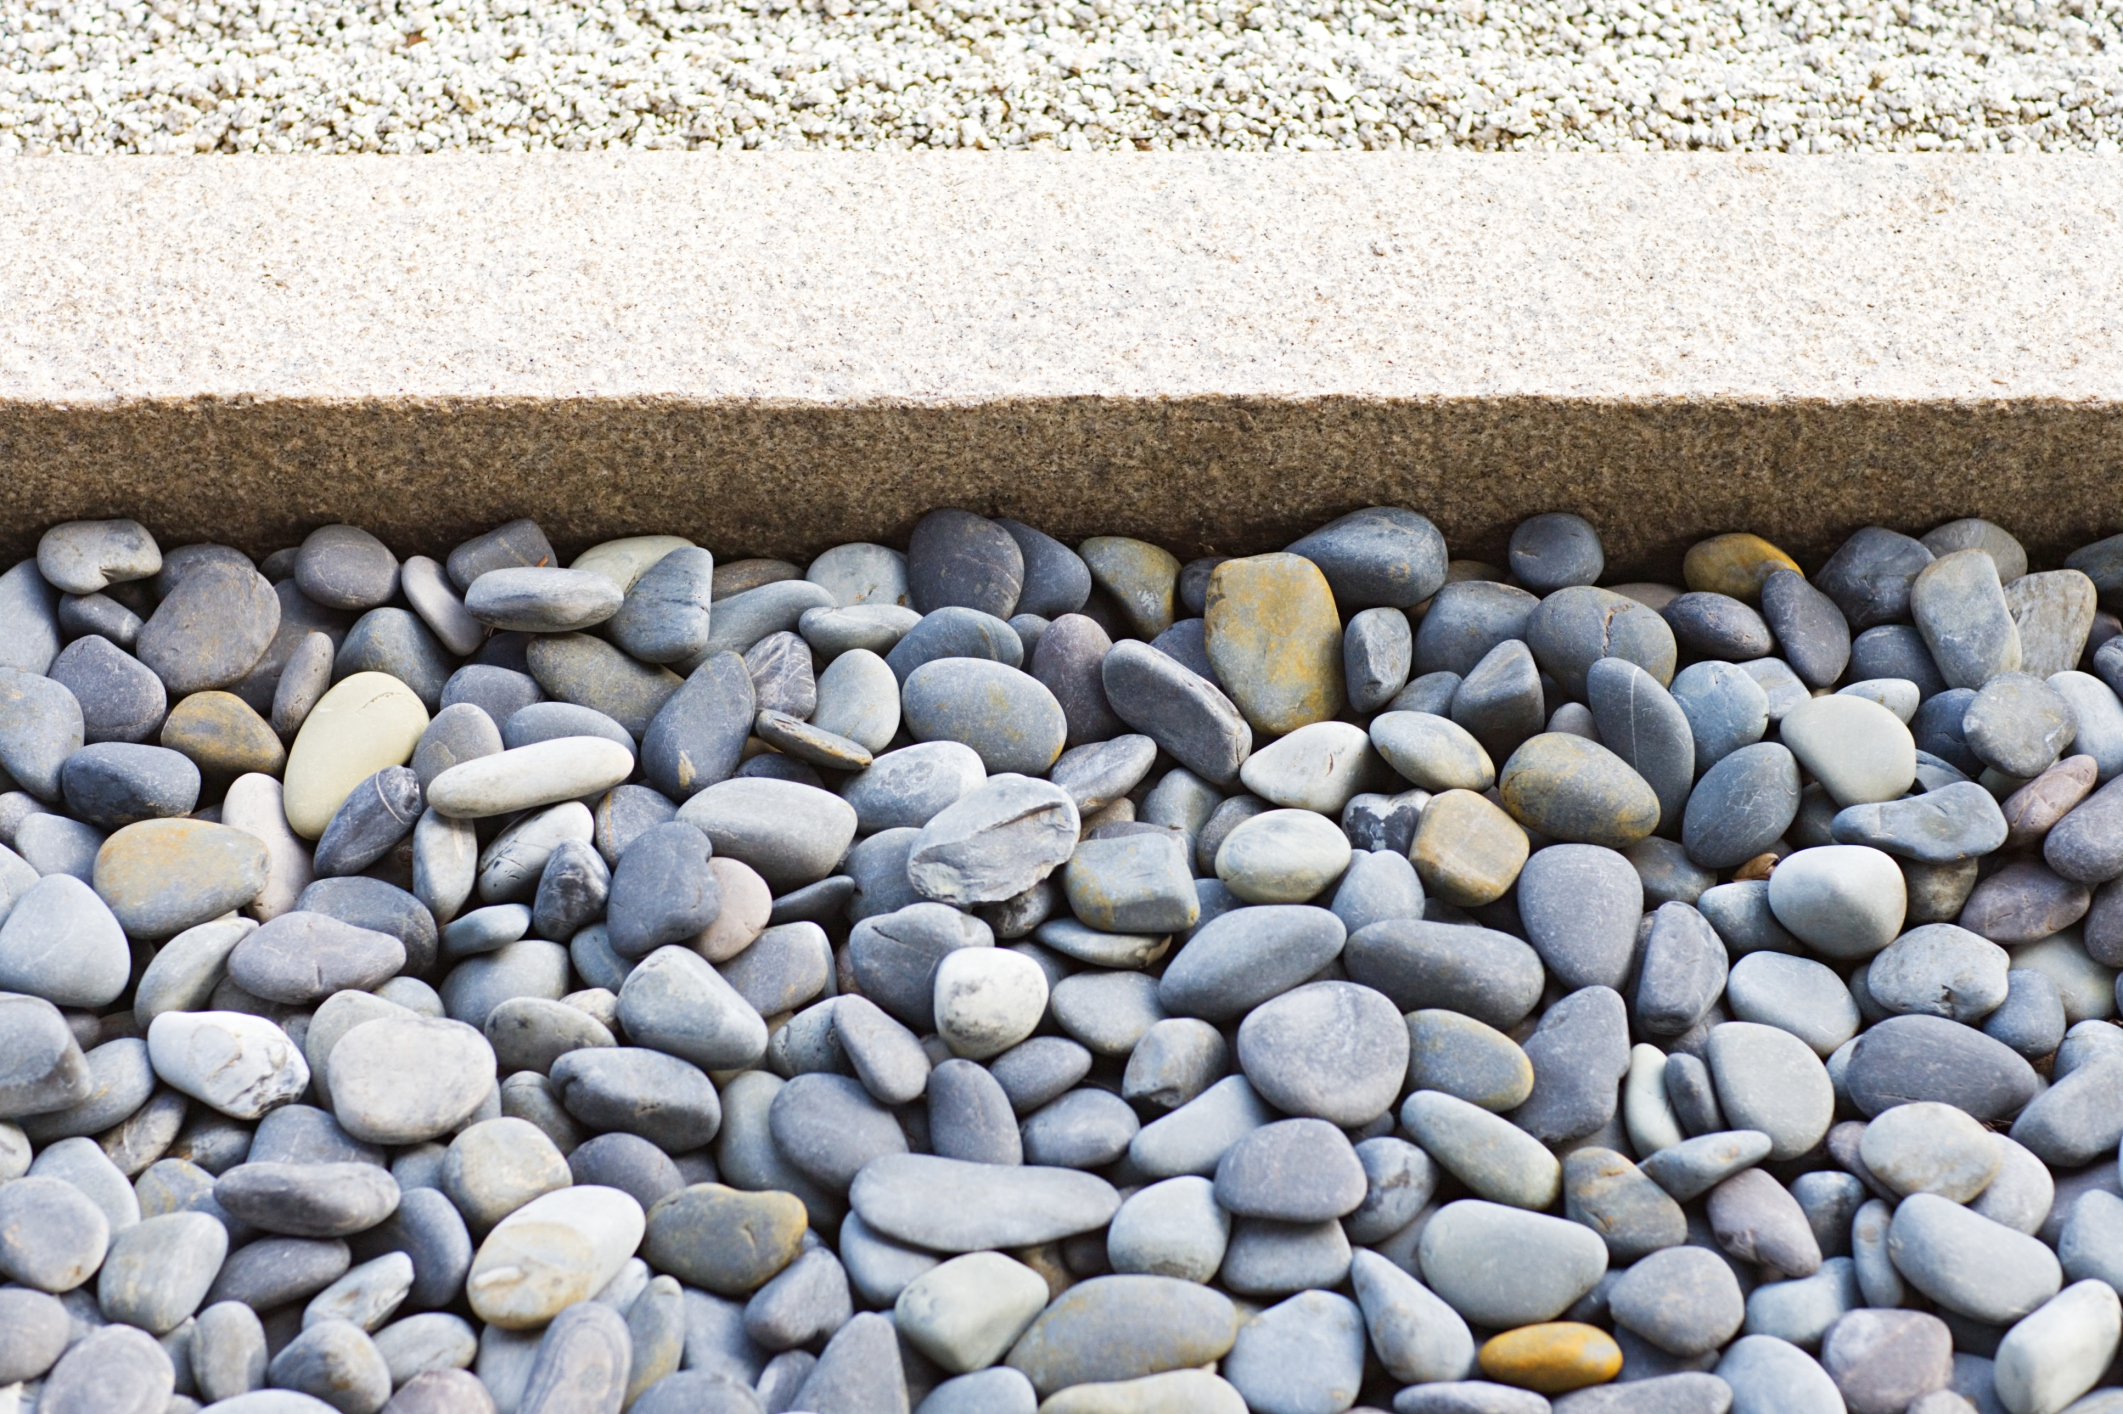 How to Prevent Weeds From Growing Through Rocks Home Guides